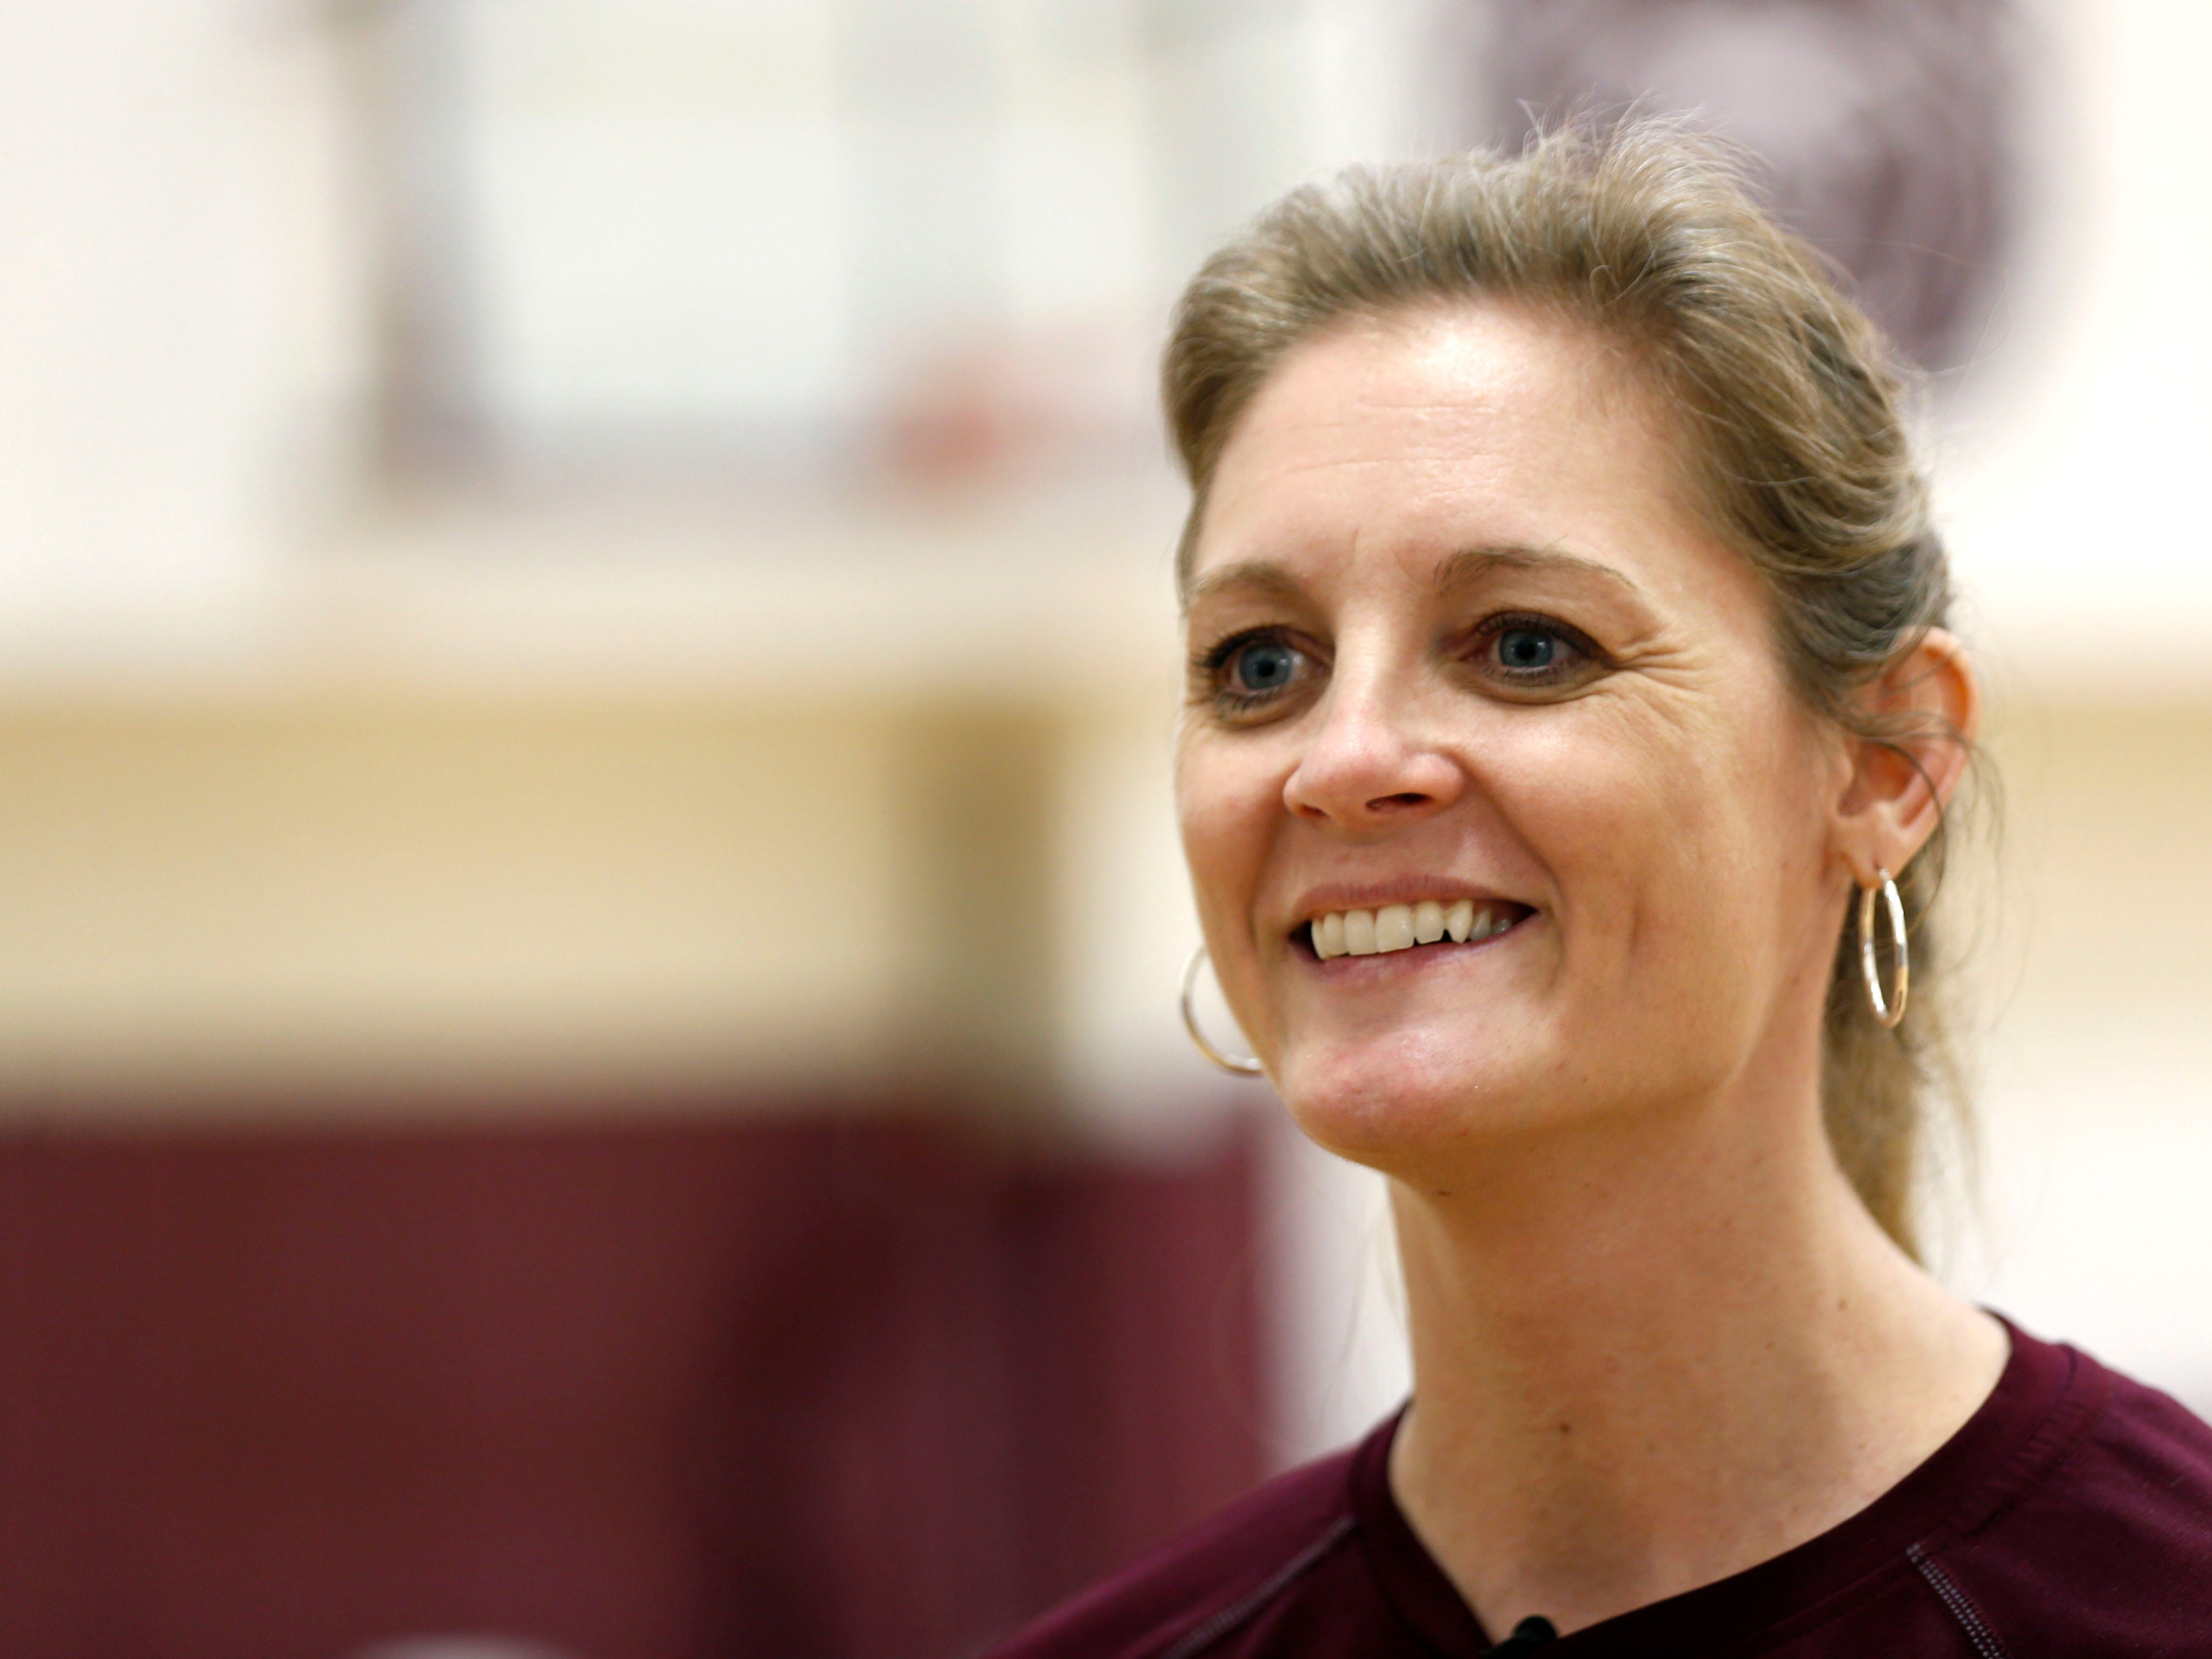 Missouri State Lady Bears head coach Kellie Harper talks to the media before practice on Wednesday, March 27, 2019.